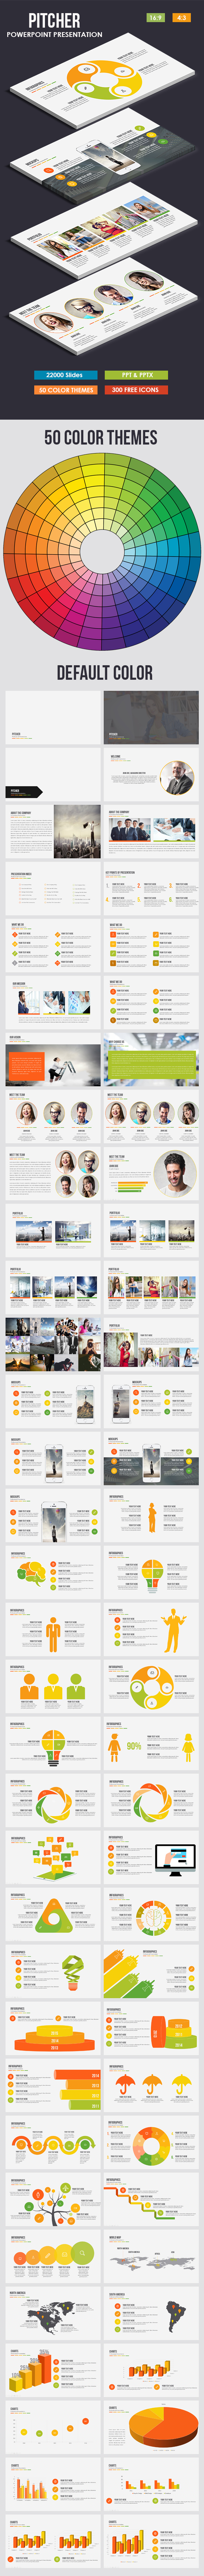 Pitcher - Multi-purpose Powerpoint Template - Business PowerPoint Templates